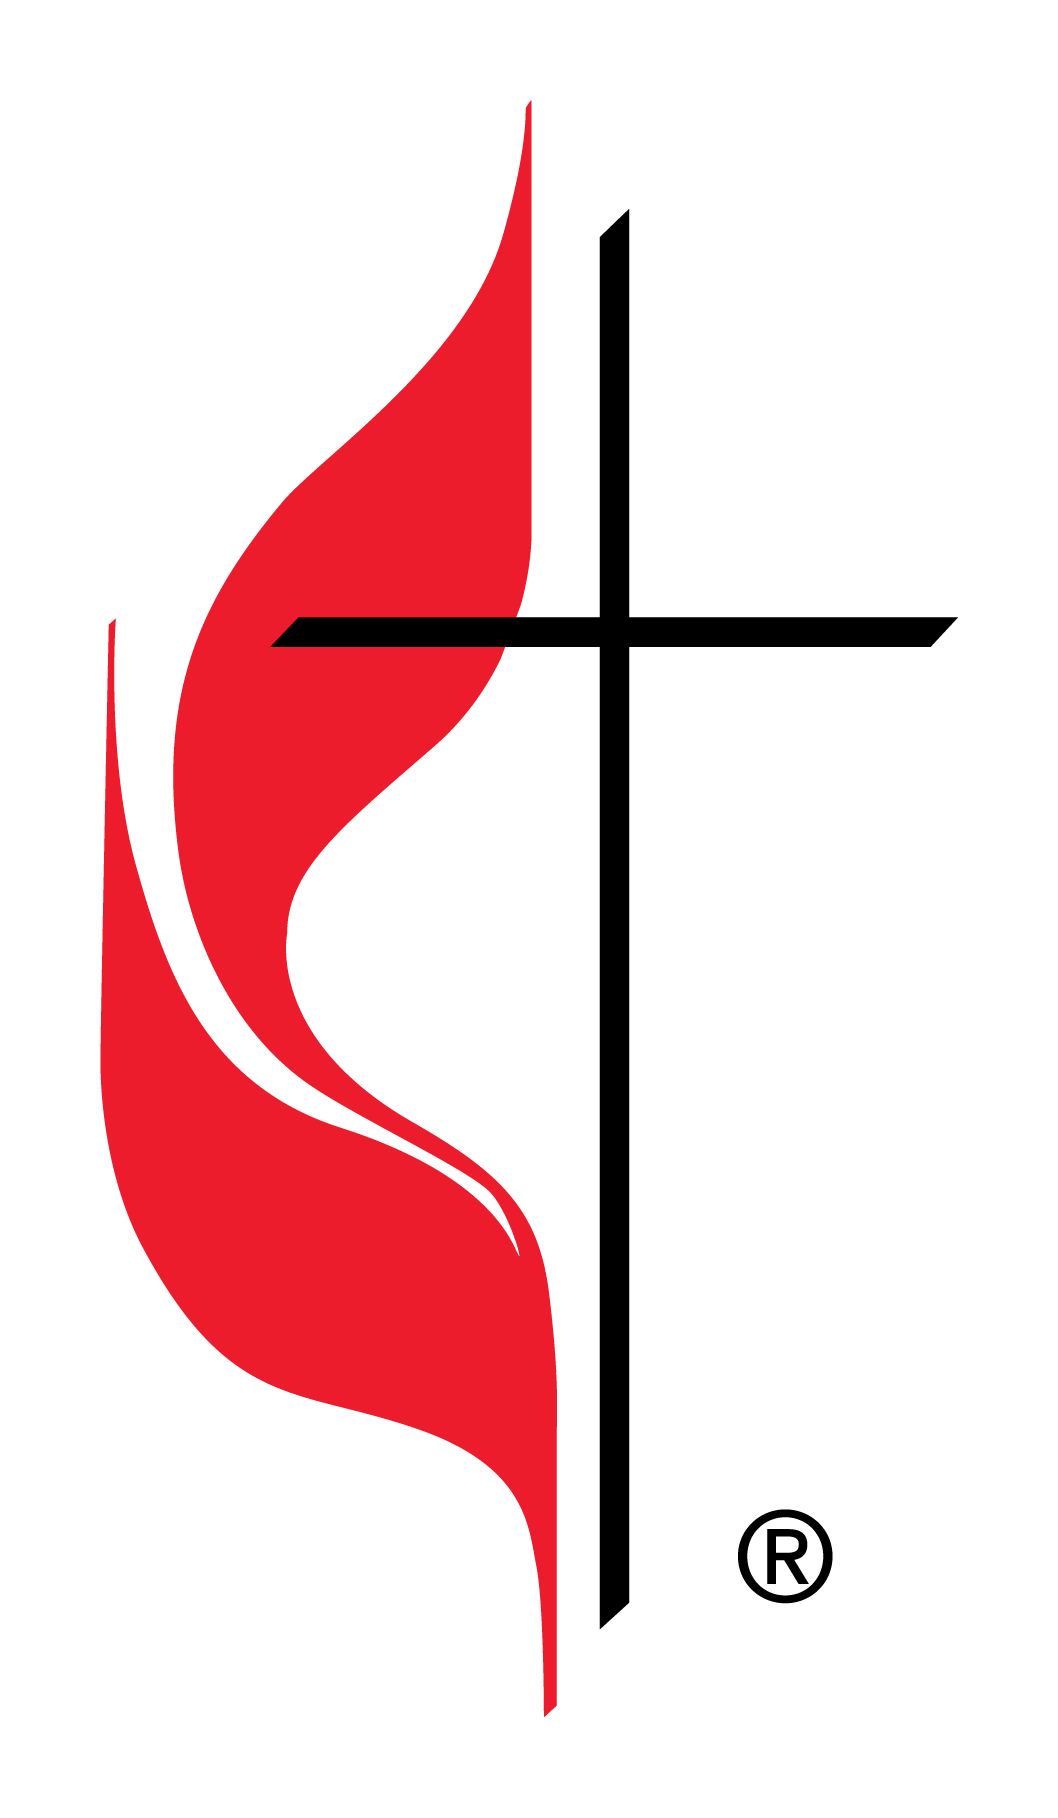 Cross clipart for pastor installation jpg library Official Cross and Flame Logo of The United Methodist Church ... jpg library